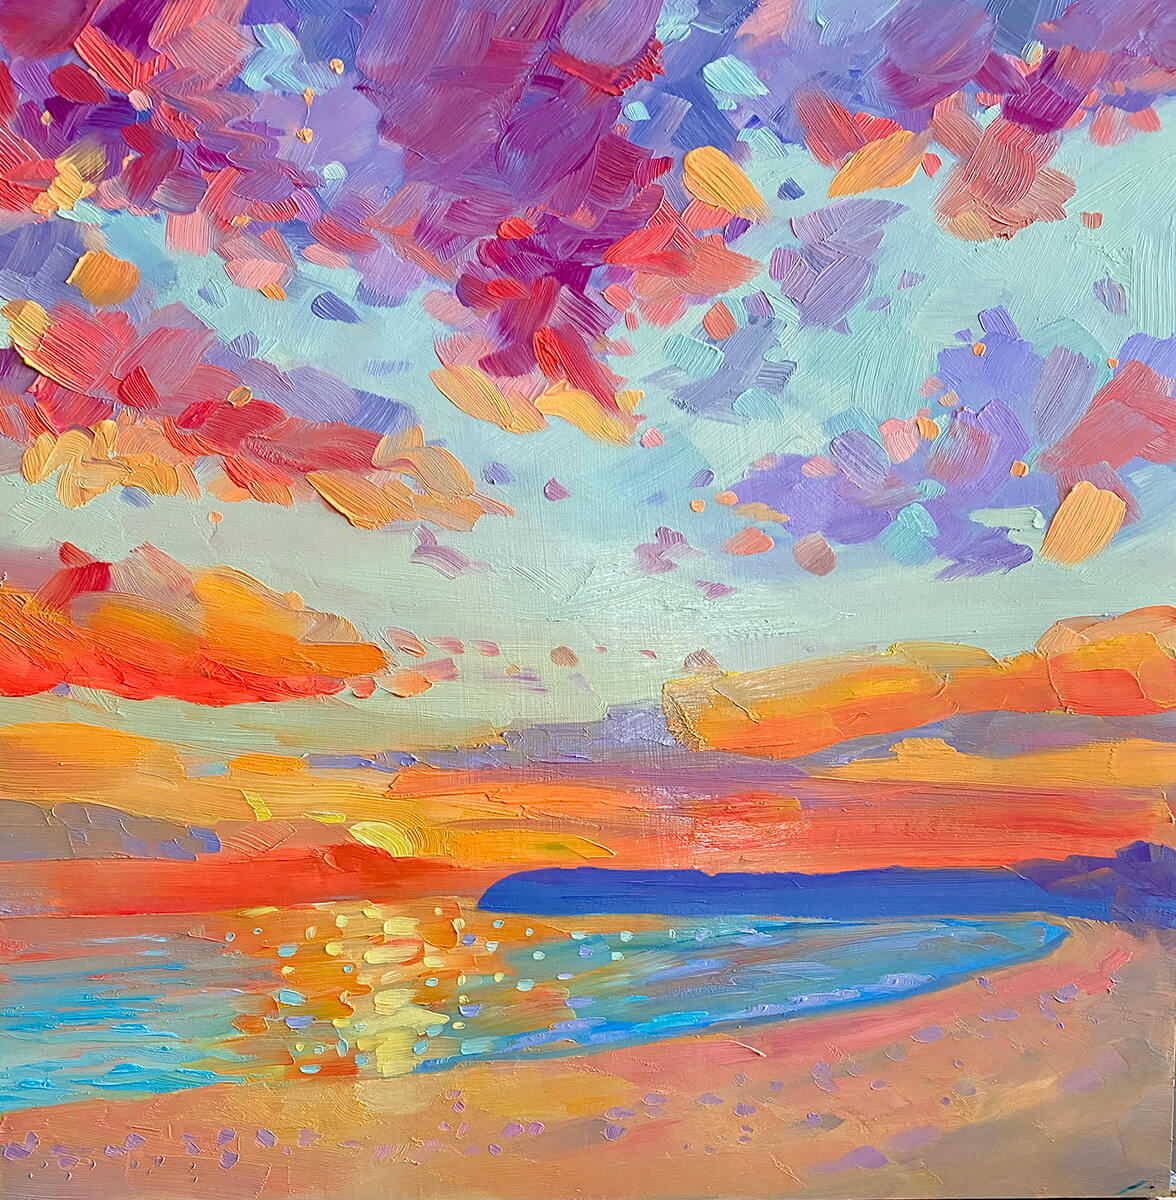 Bright Days painting by Stephanie Schlatter